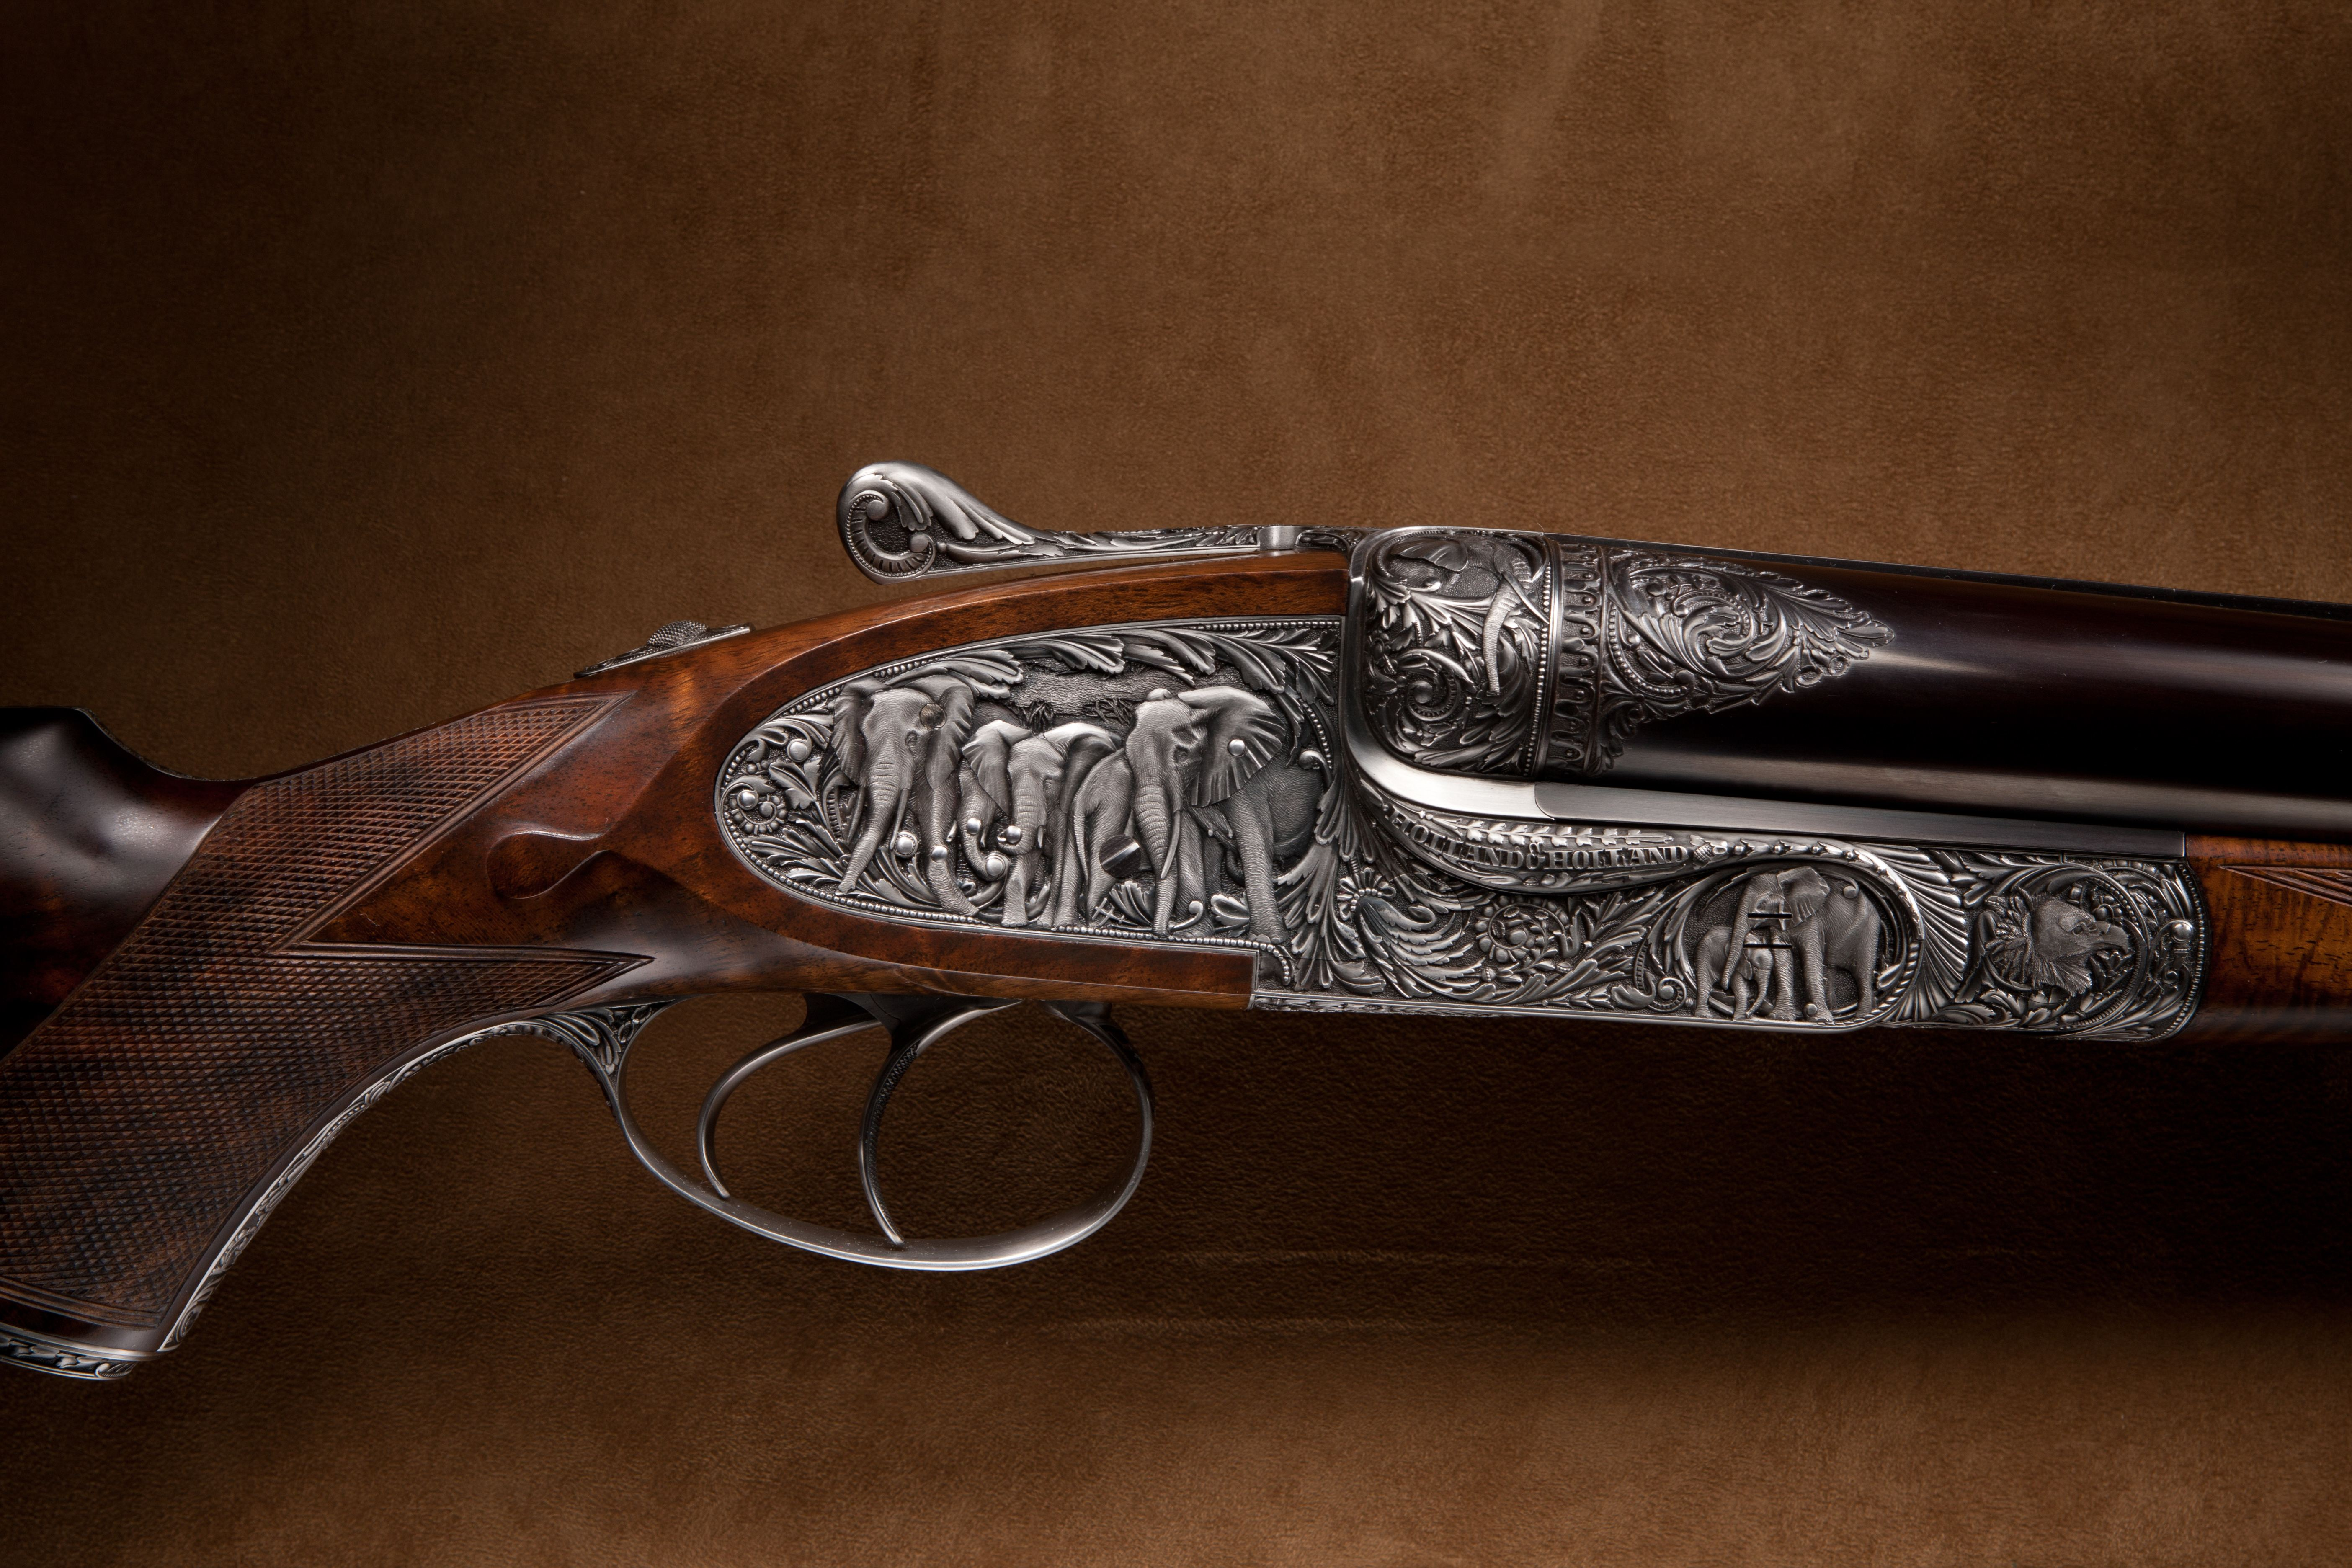 Holland & Holland Double Rifle - .700 Nitro Express cal.